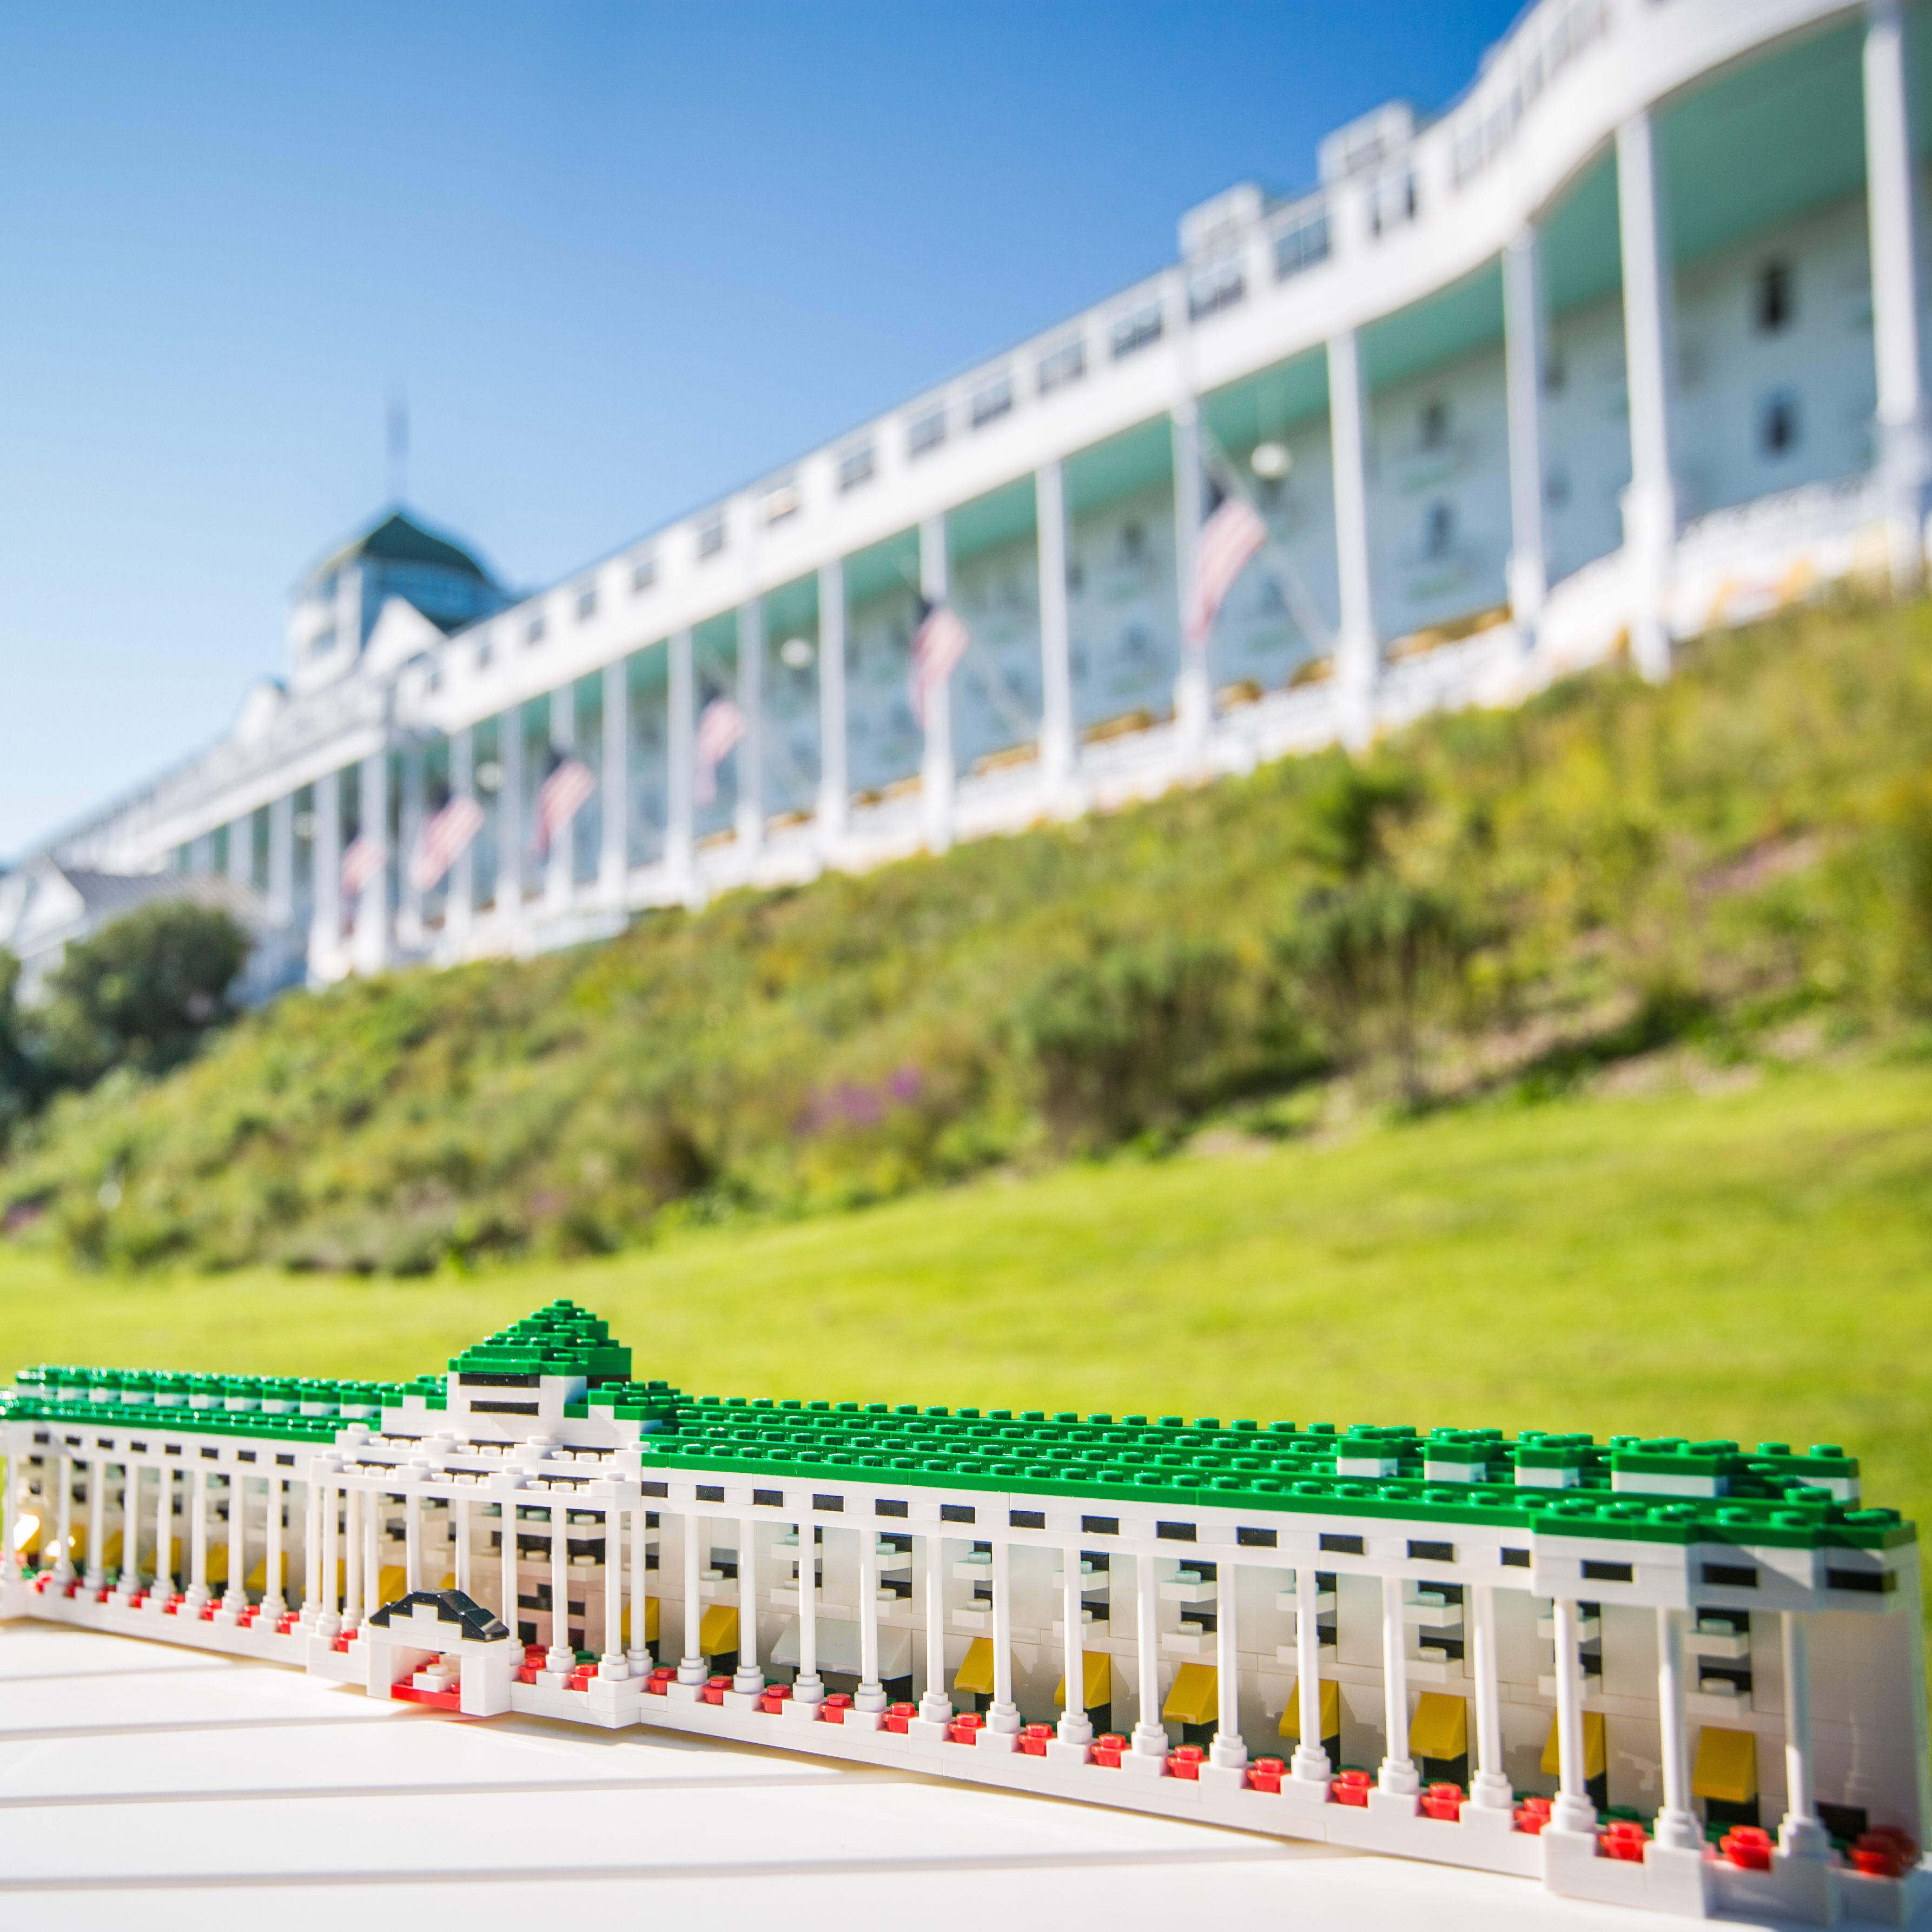 You can vote for Mackinac Island's Grand Hotel to become a Lego set